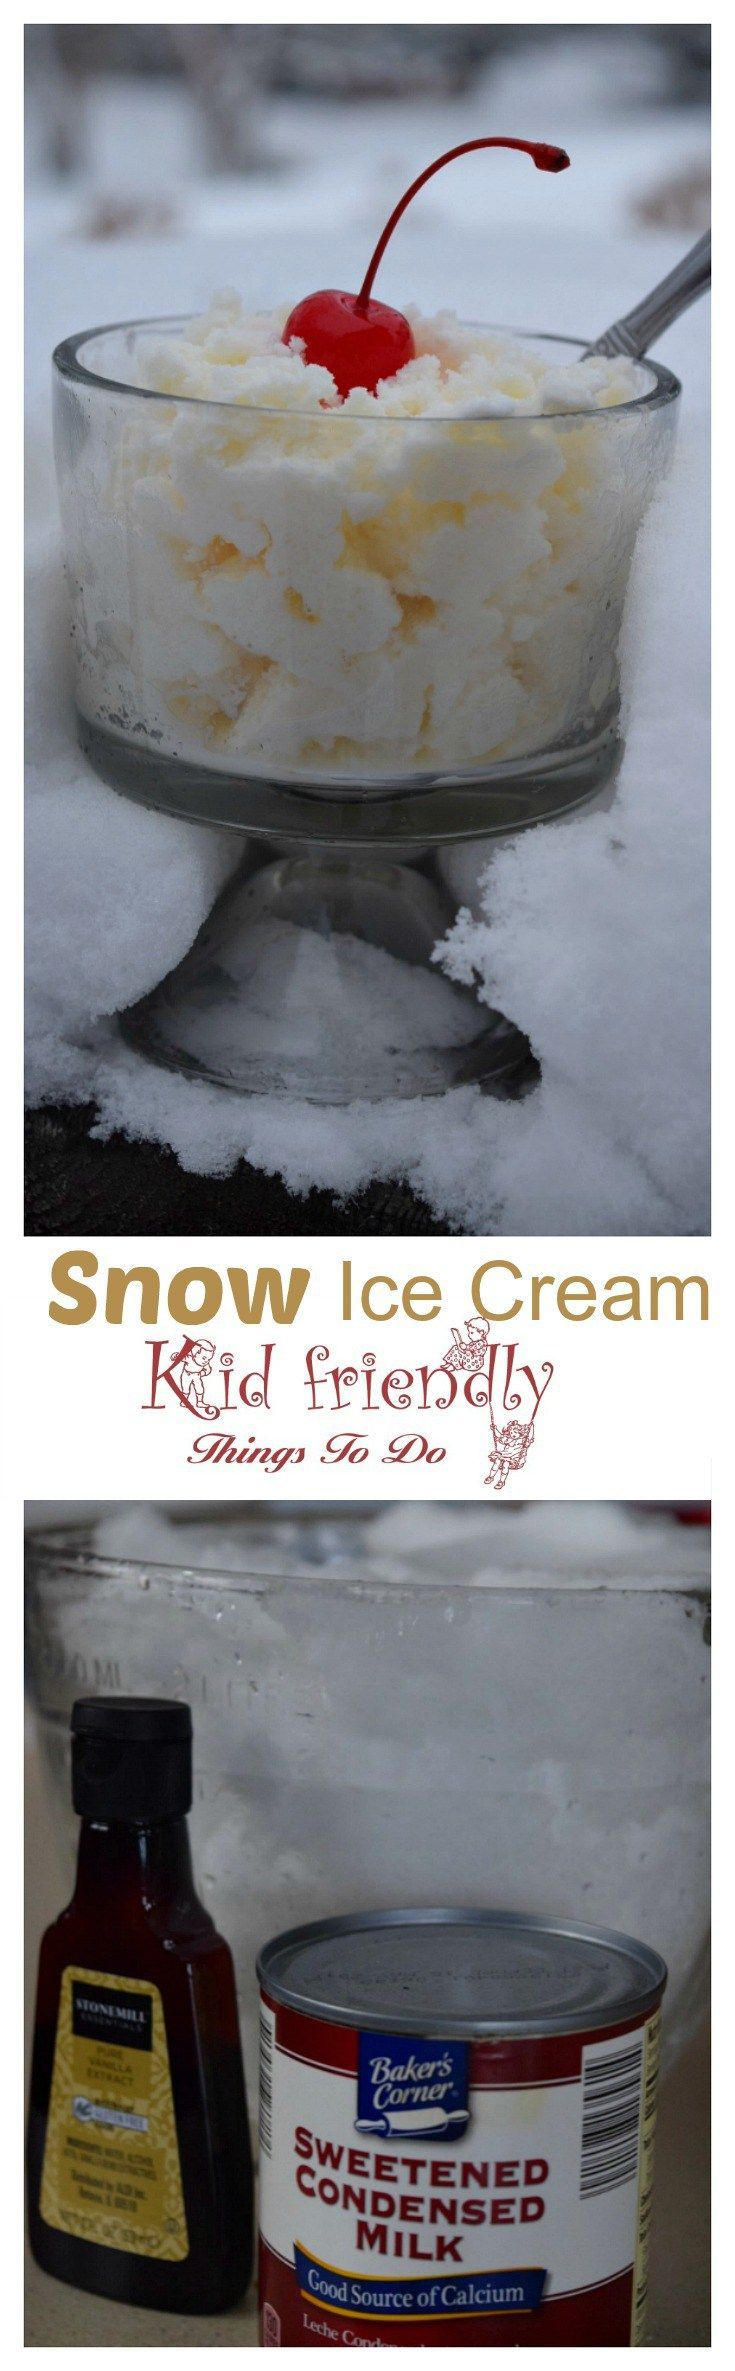 Simple and Delicious Three Ingredient Snow Ice Cream Recipe made with Sweetened Condensed Milk - This is so much fun to do with the kids and so easy to make. http://www.kidfriendlythingstodo.com